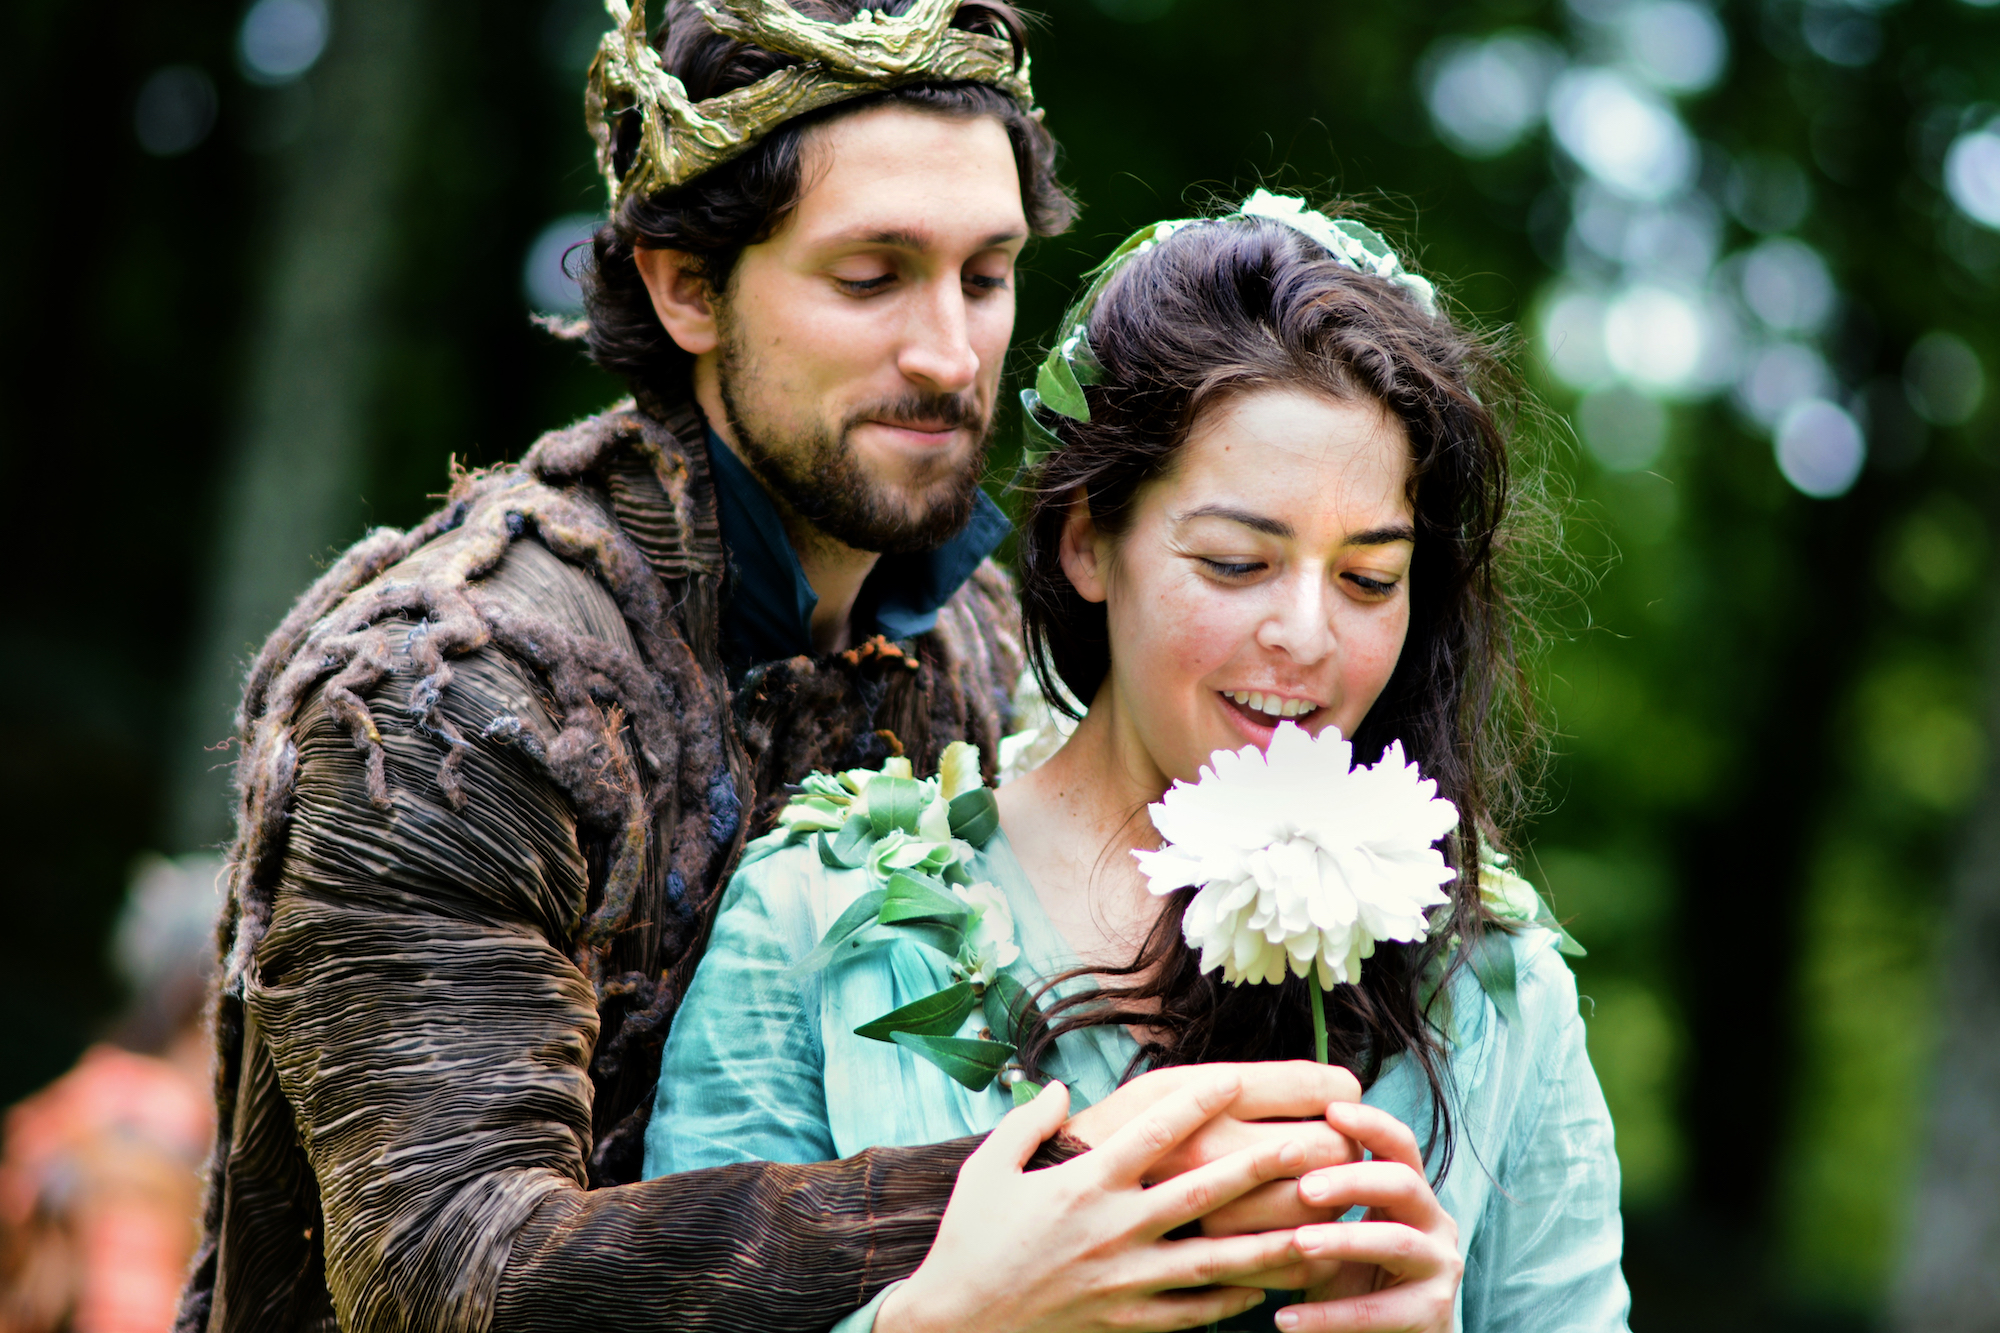 David Bertoldi and Kate Kenney in A Midsummer Night's Dream